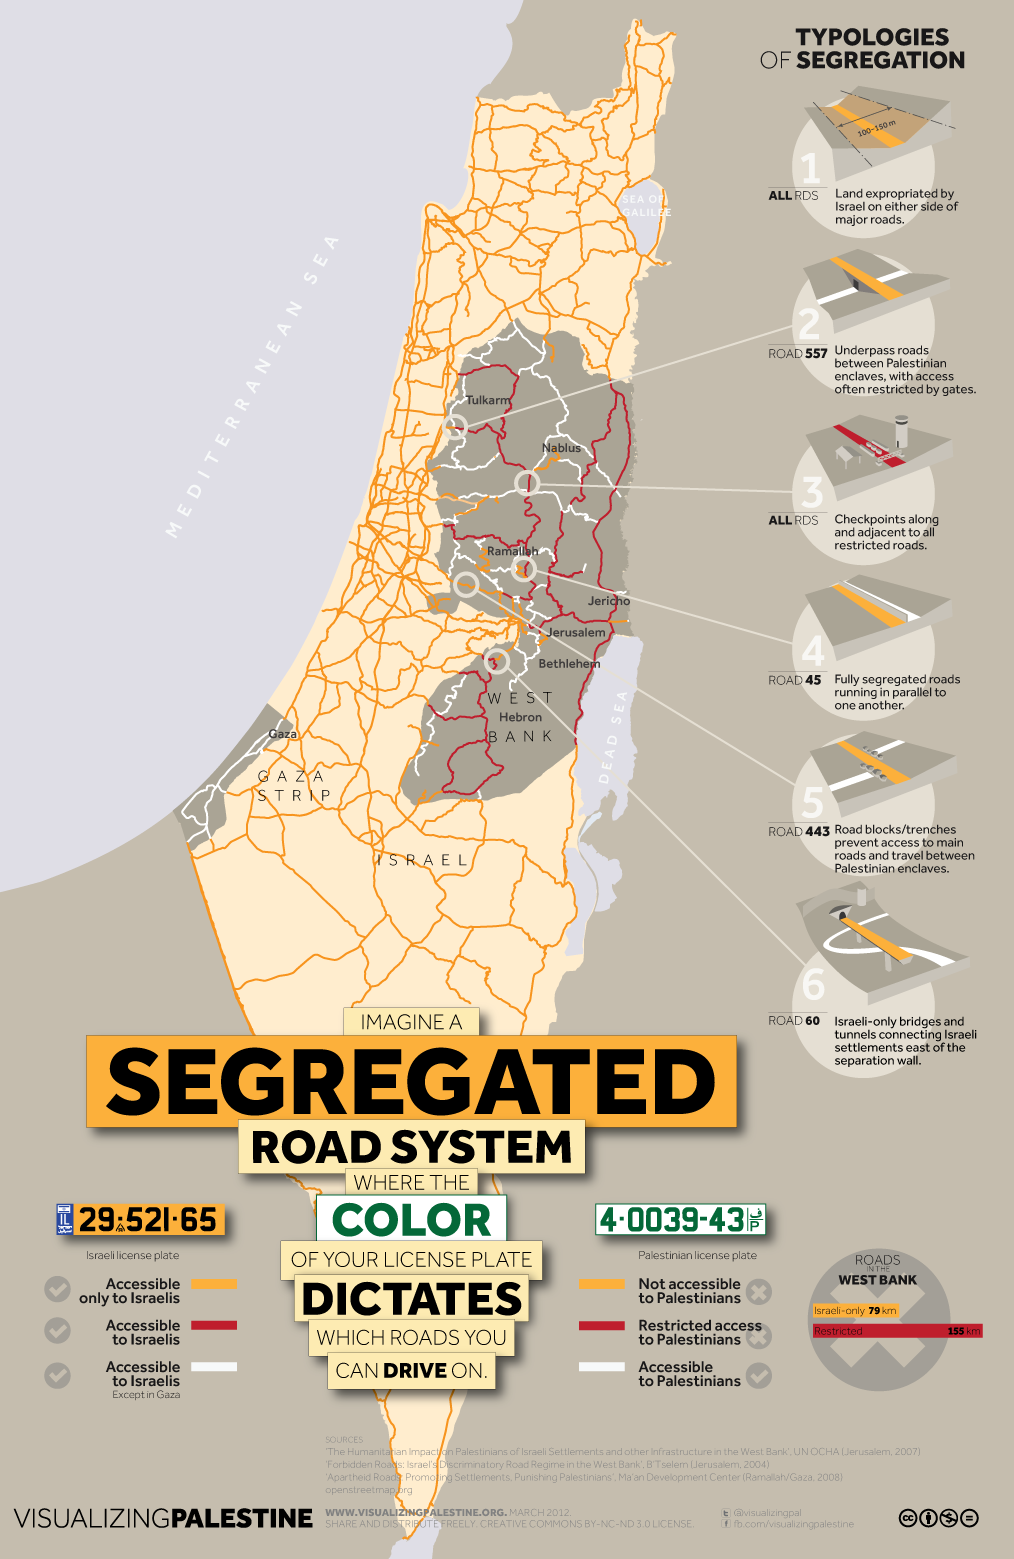 Segregated roads